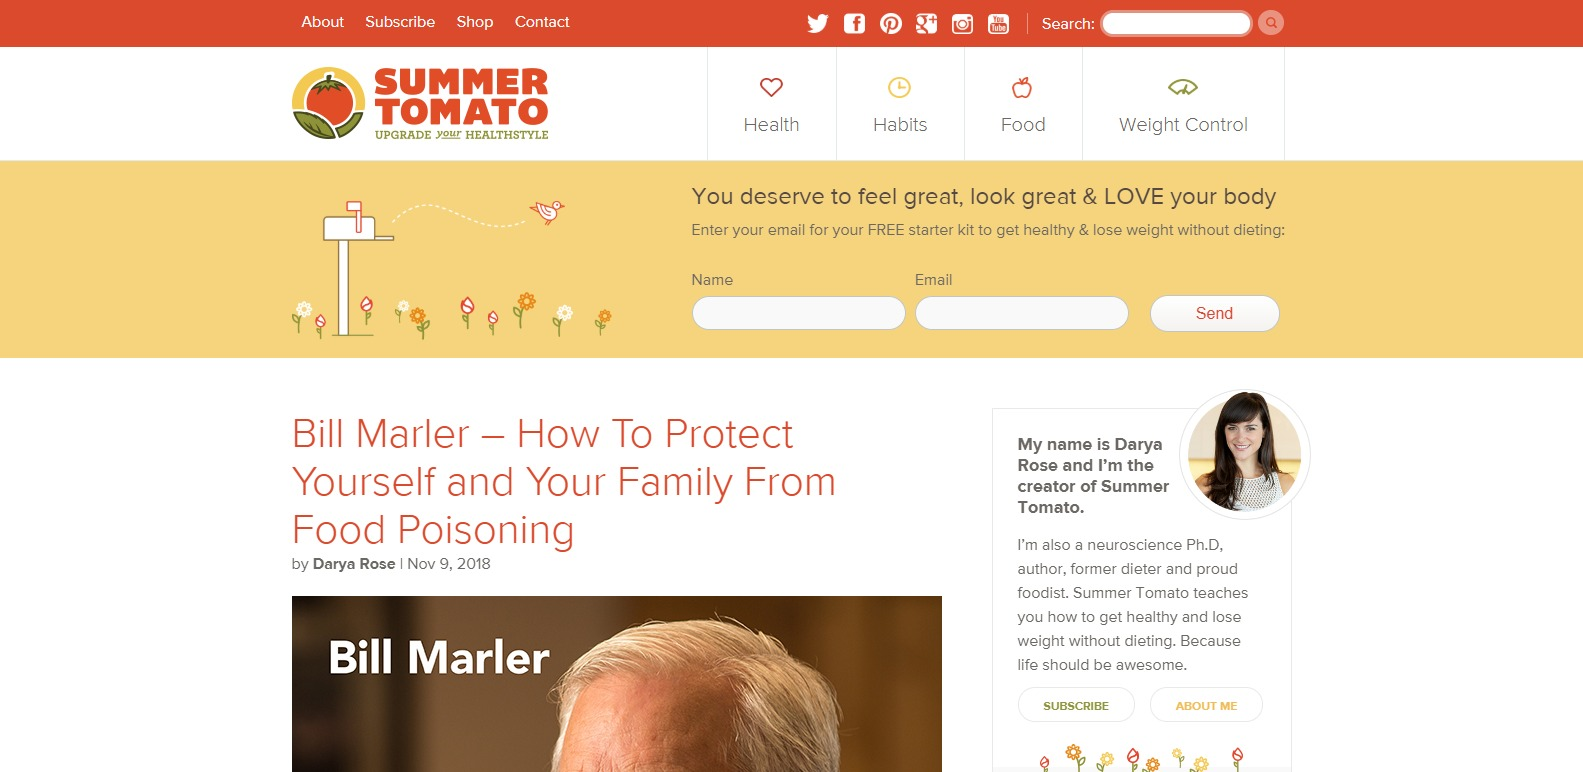 Summer Tomato fitness experts